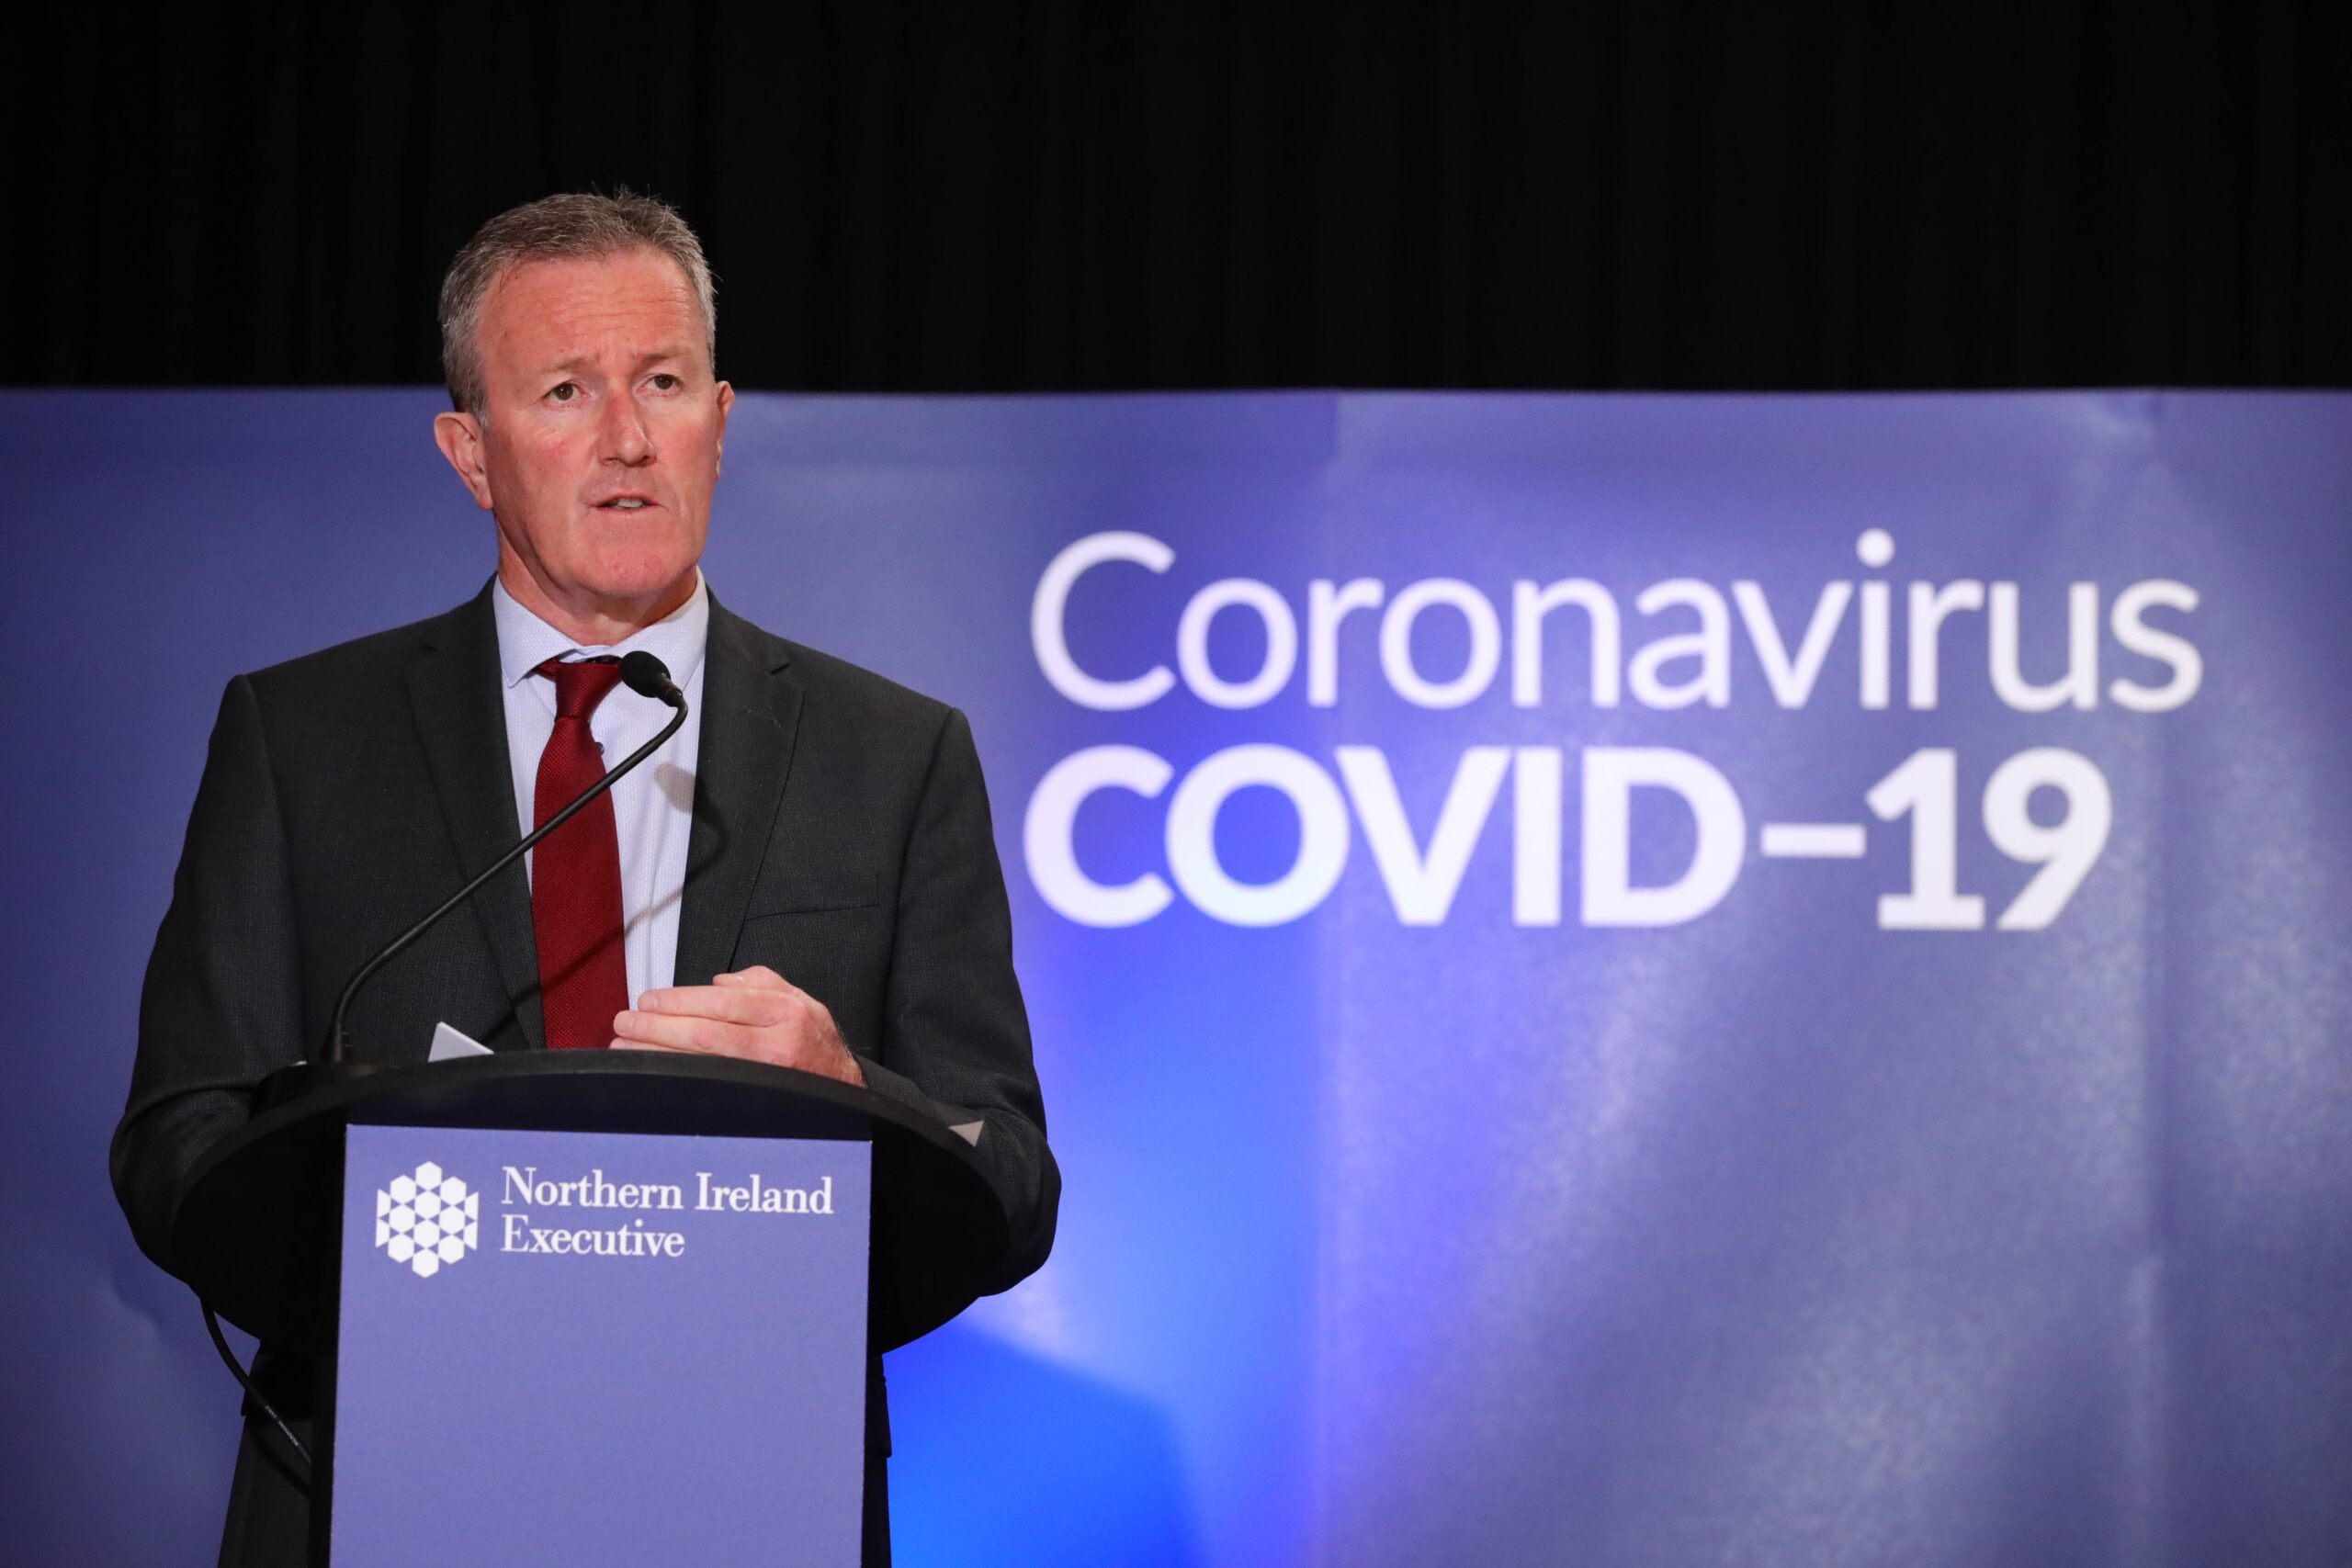 Finance Minister Conor Murphy Northern Ireland businesses: Financial support announced for businesses during COVID restrictions Coronavirus Covid19 NI business news - Freelance Belfast Copywriter Paul Malone - Tall Paul Marketing